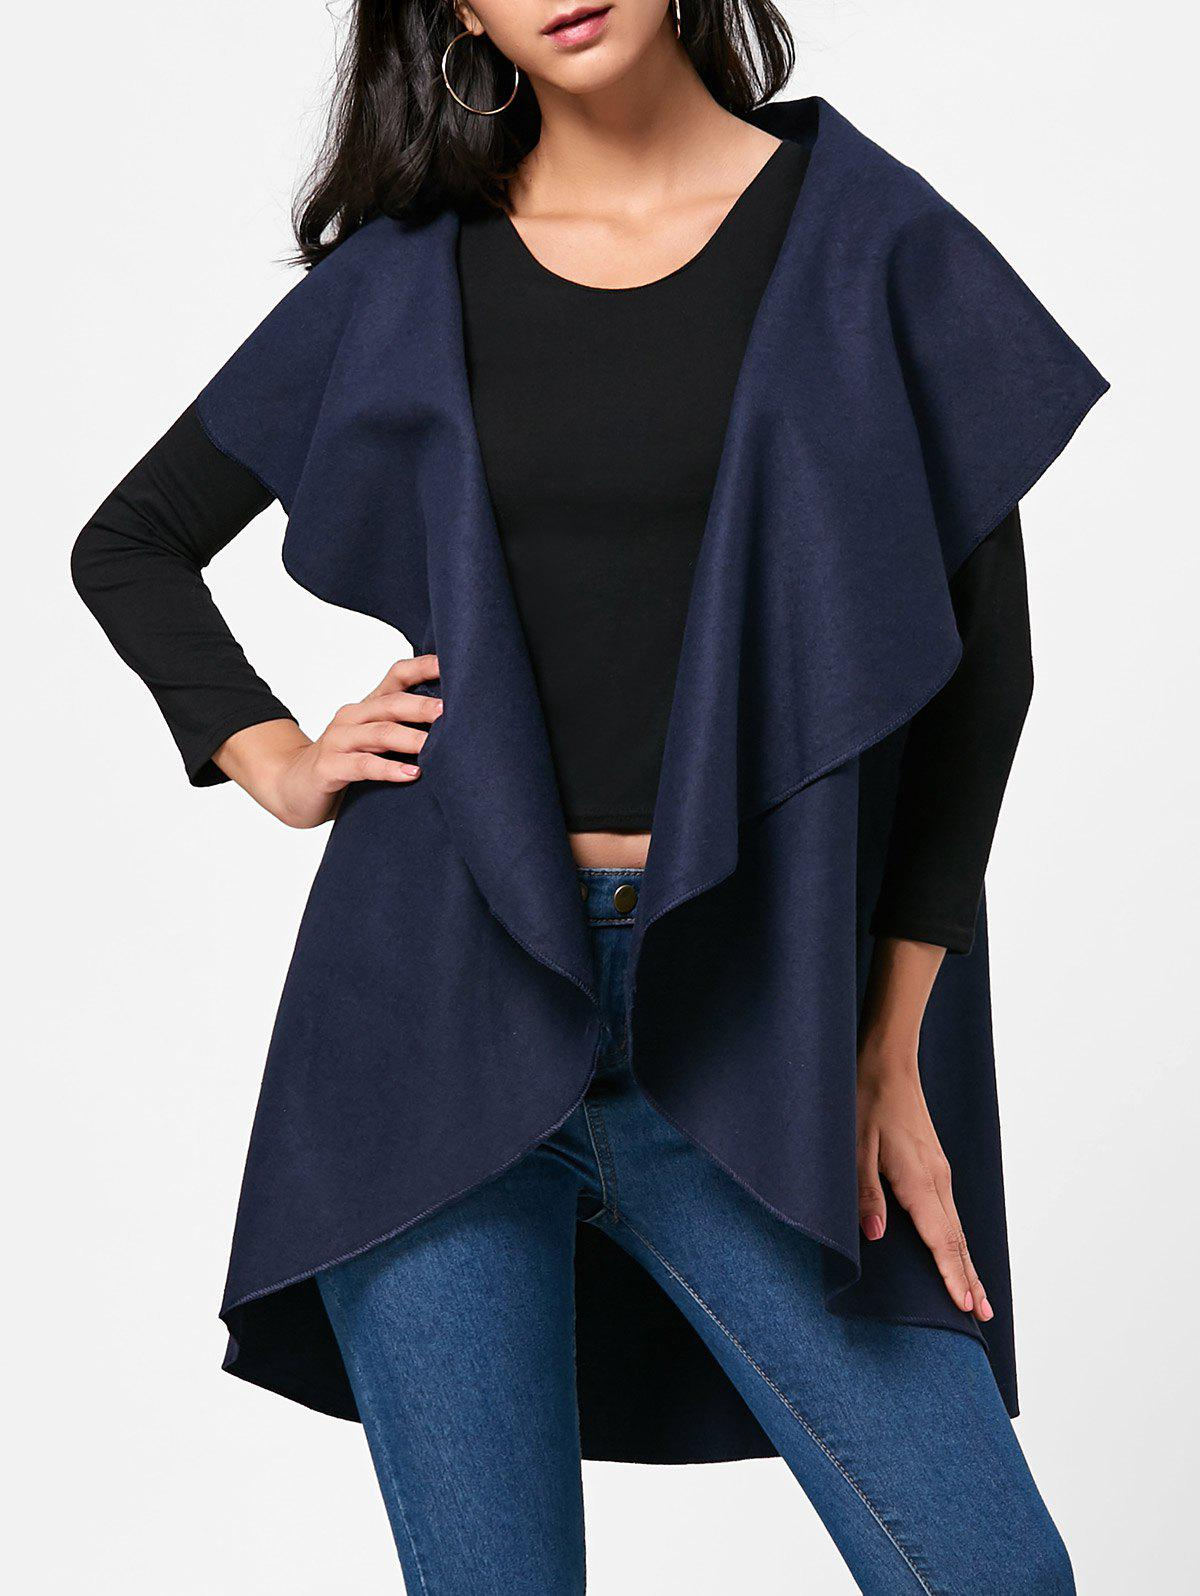 Wool Blend Sleeveless Open Front Cape - PURPLISH BLUE ONE SIZE